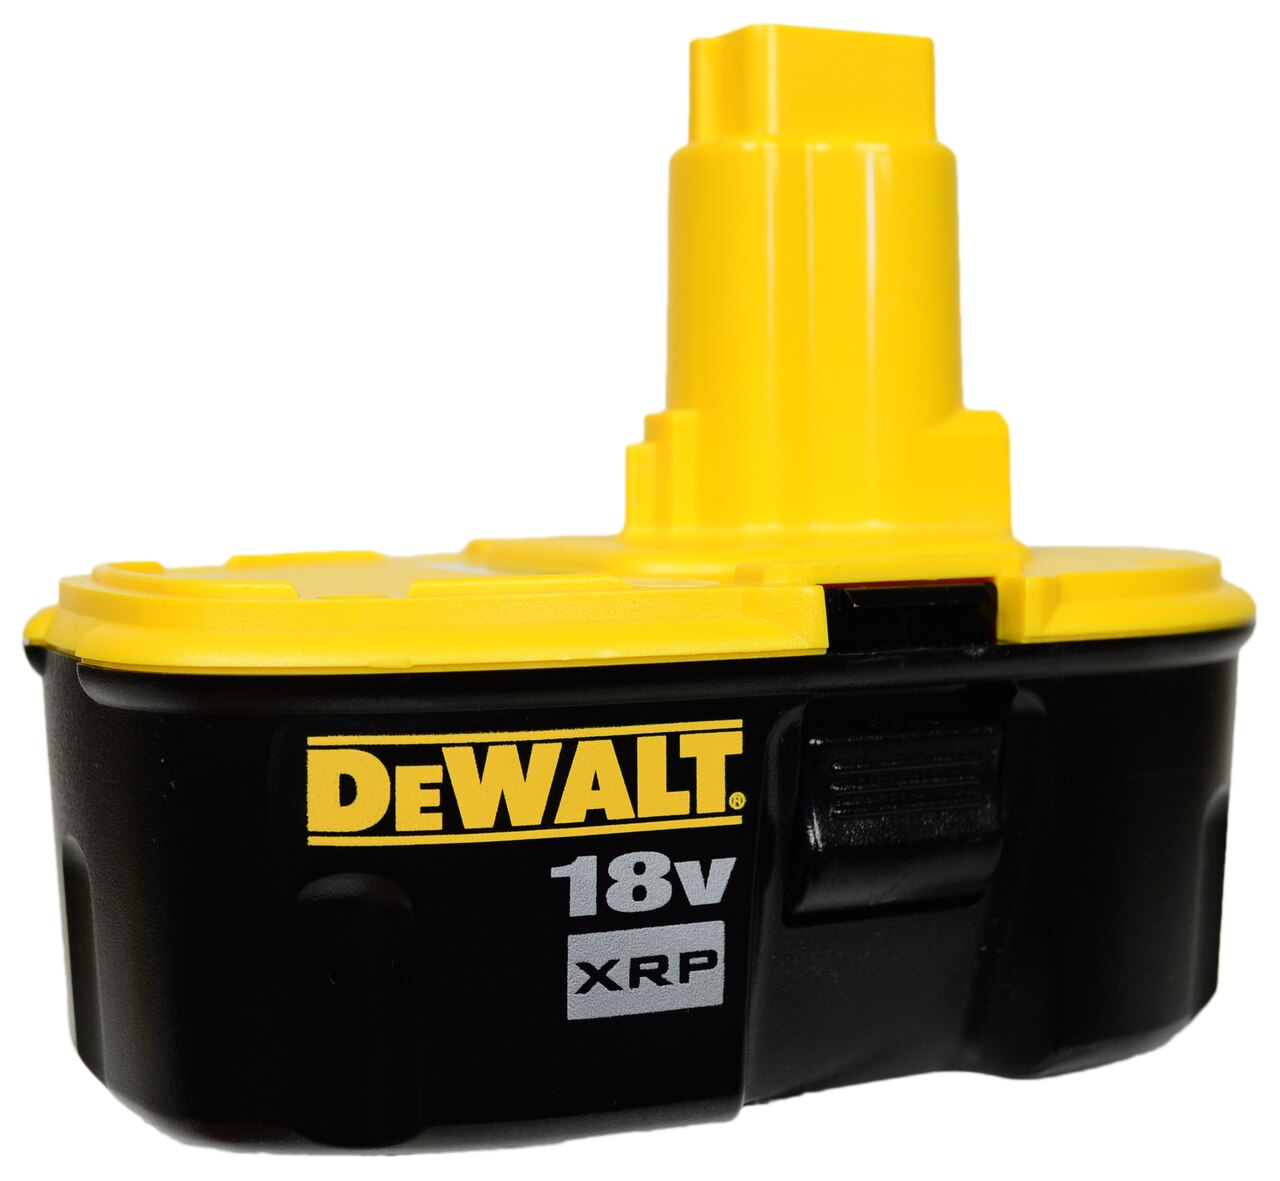 Dewalt 18 Volt Ni-Cd/Ni-Mh Battery - Rebuild Service To 3Ah - Power Tool Rebuild